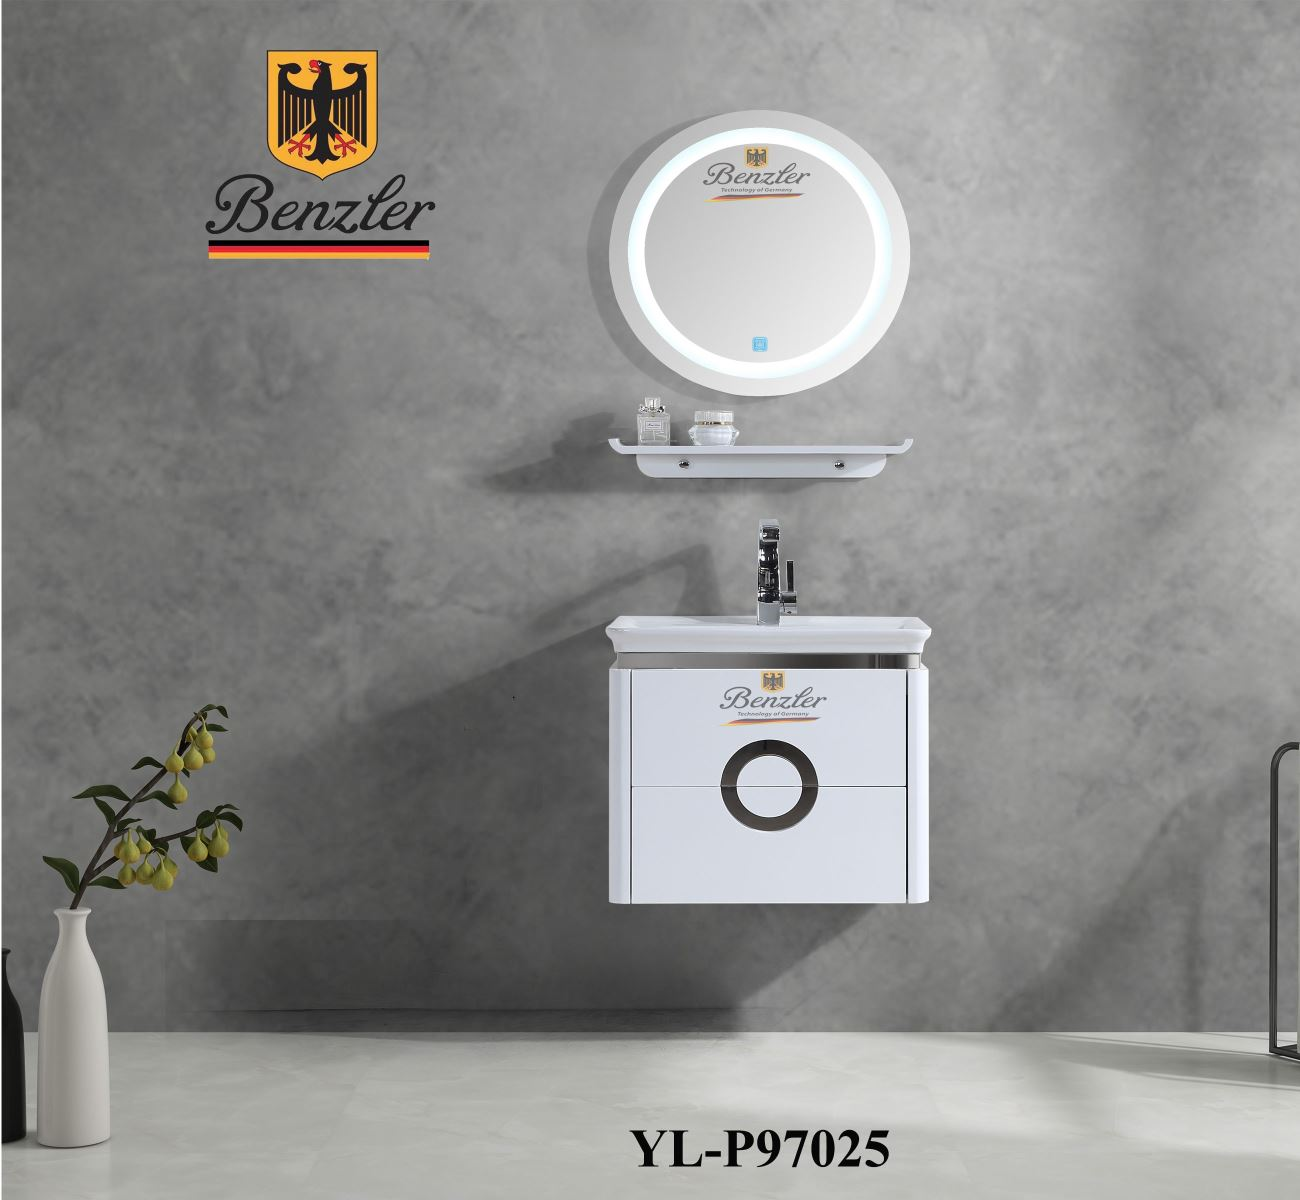 BỘ TỦ LAVABO BENZLER YL-P97025